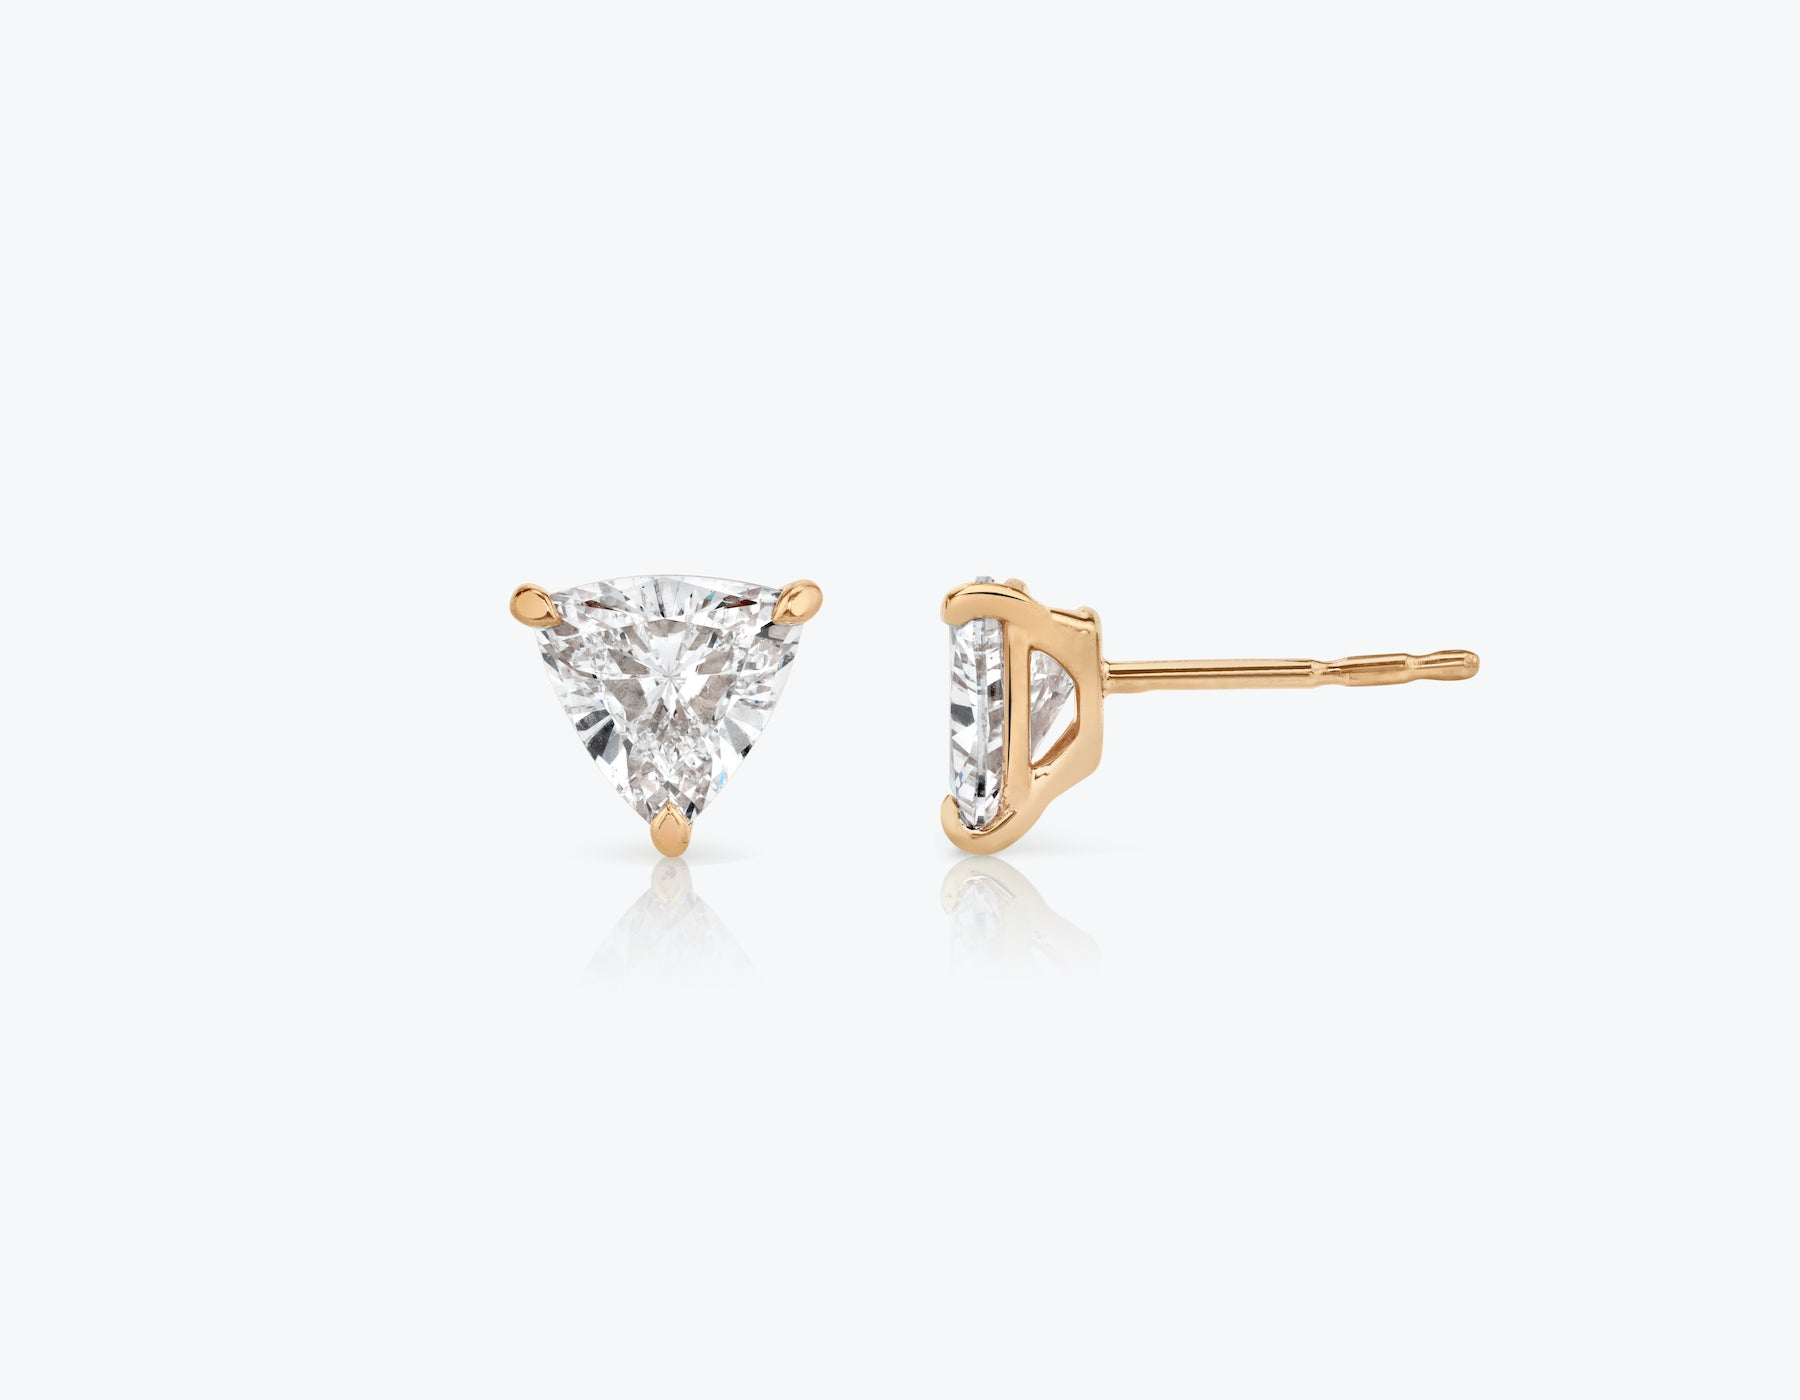 Vrai 14k solid gold Solitaire Trillion Diamond Studs sustainably created triangle diamonds prong set earrings side view, 14K Rose Gold